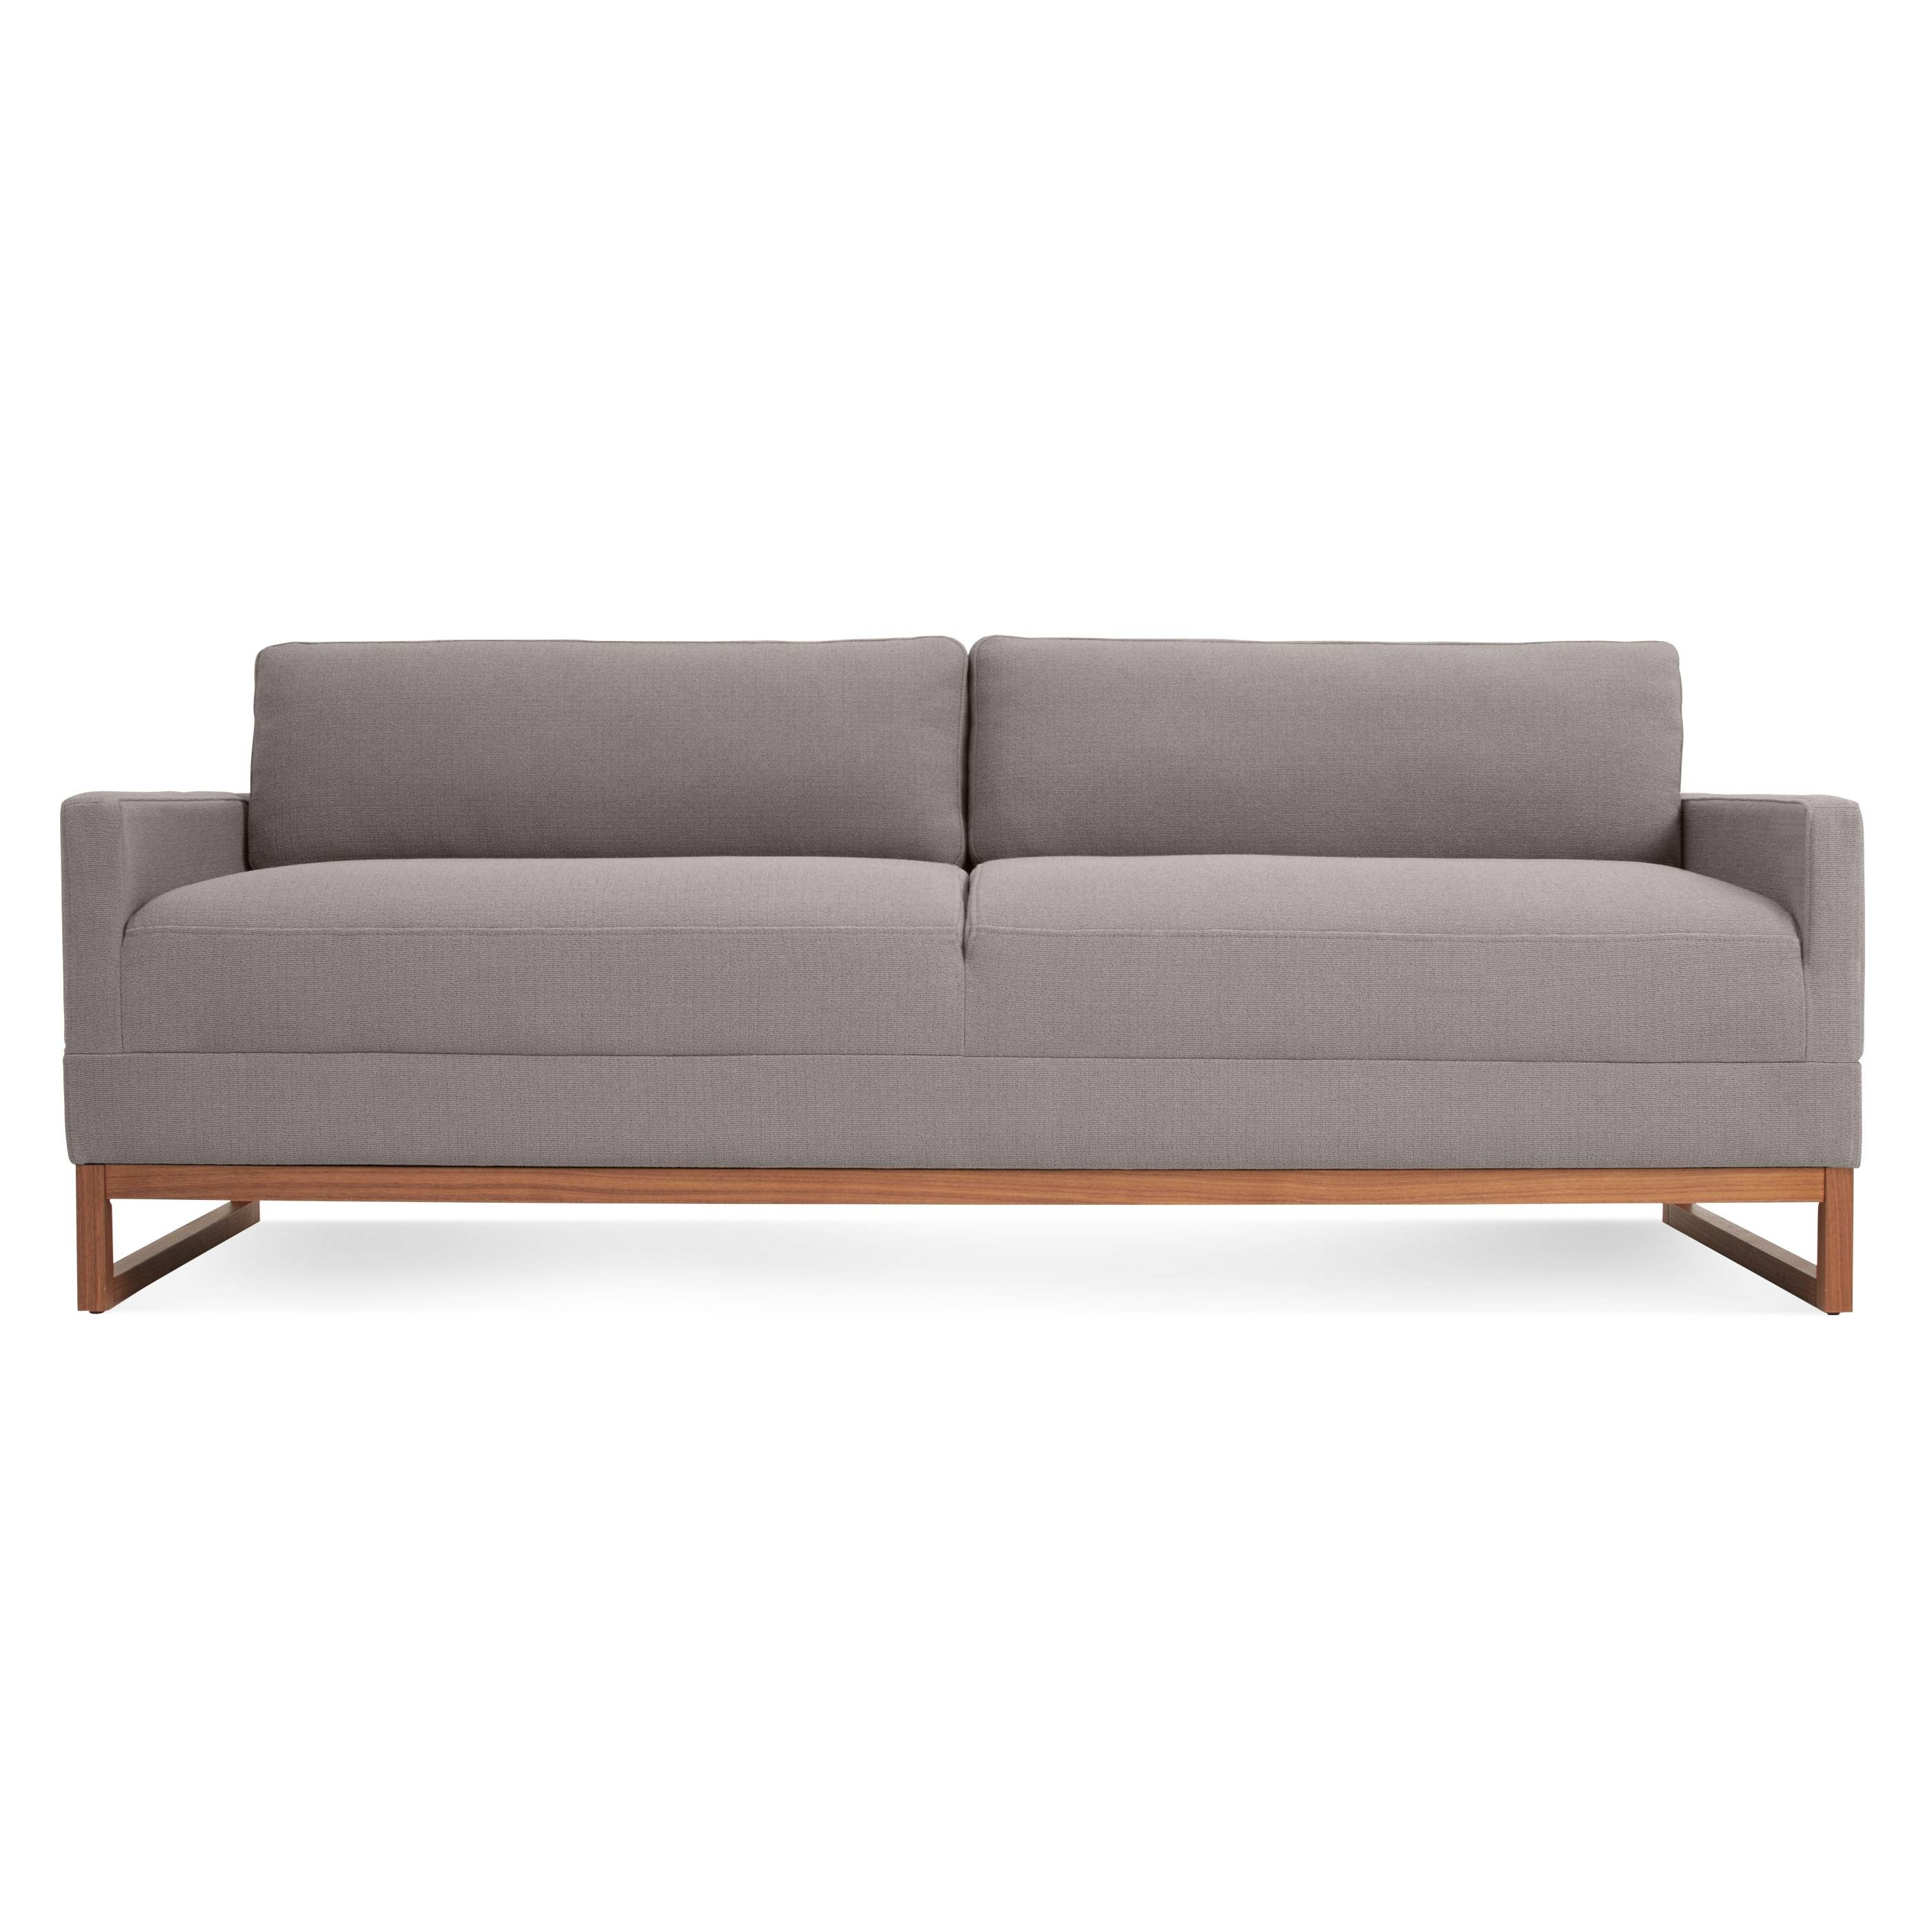 Sleeper Sofa - Diplomat Convertible Sofa | Blu Dot pertaining to Queen Convertible Sofas (Image 12 of 15)